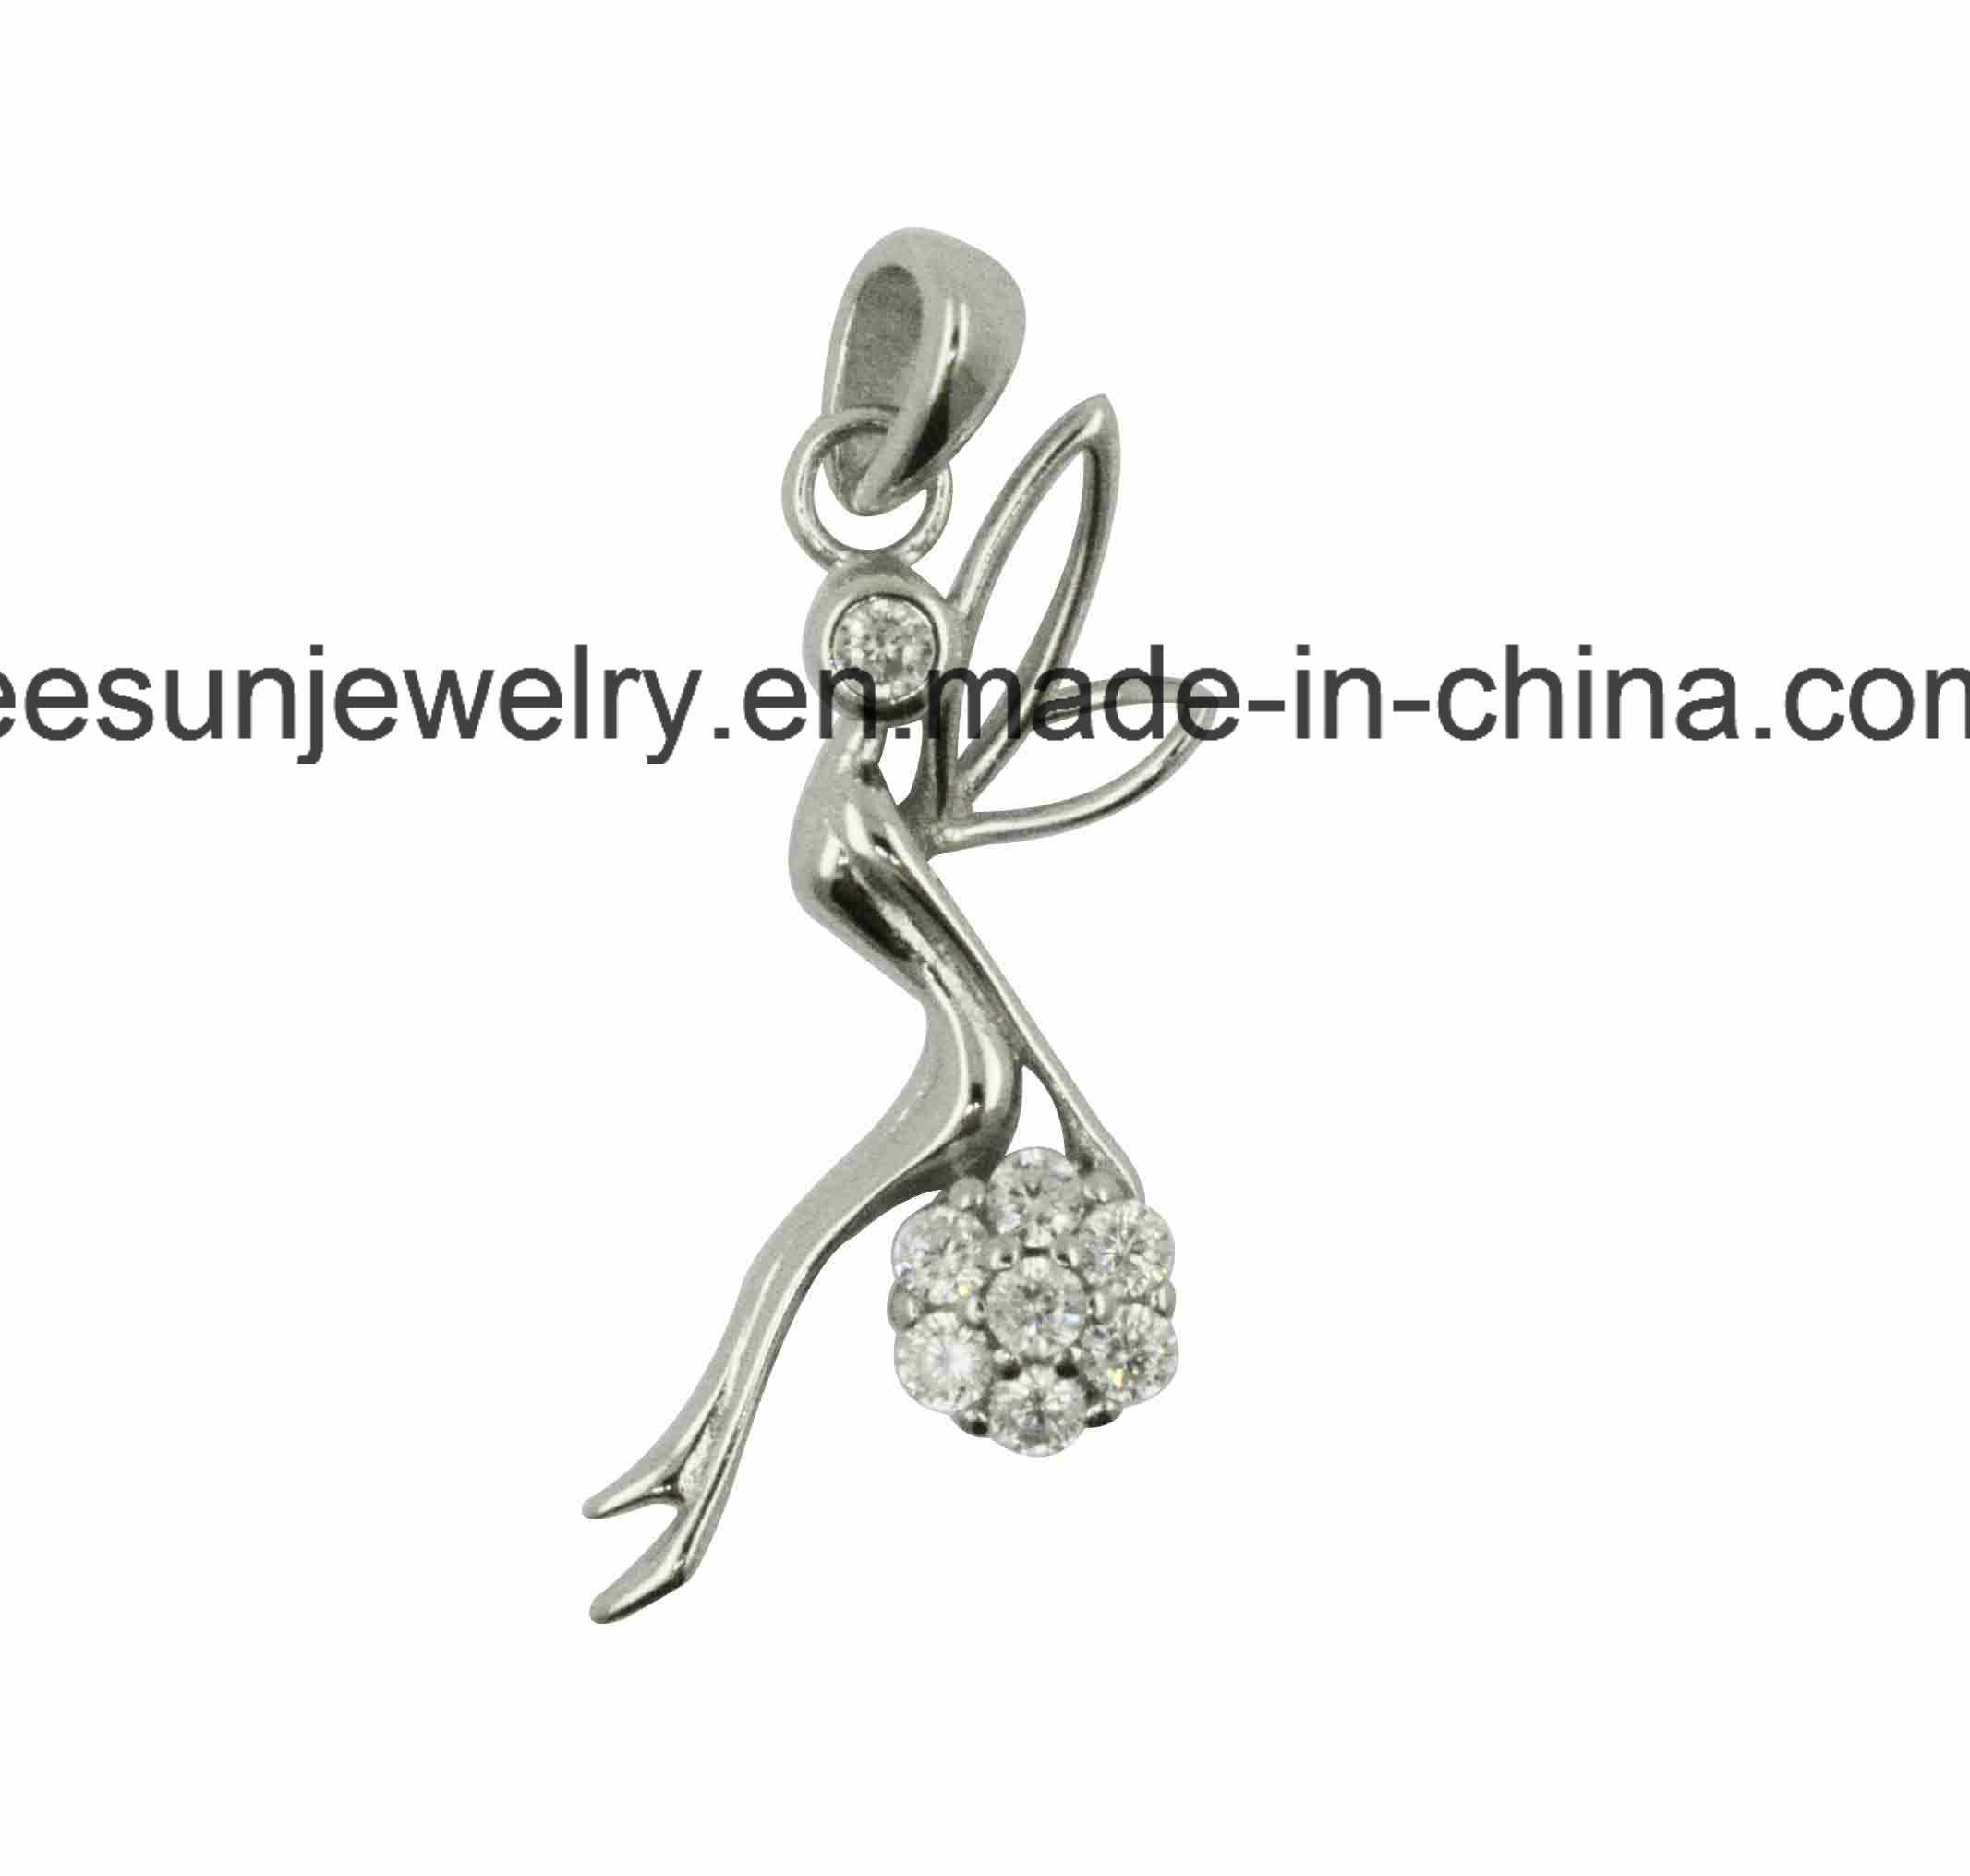 China 925 sterling silver angel pendant china 925 sterling silver china 925 sterling silver angel pendant china 925 sterling silver angel pendant 925 sterling silver dancing girl design aloadofball Image collections